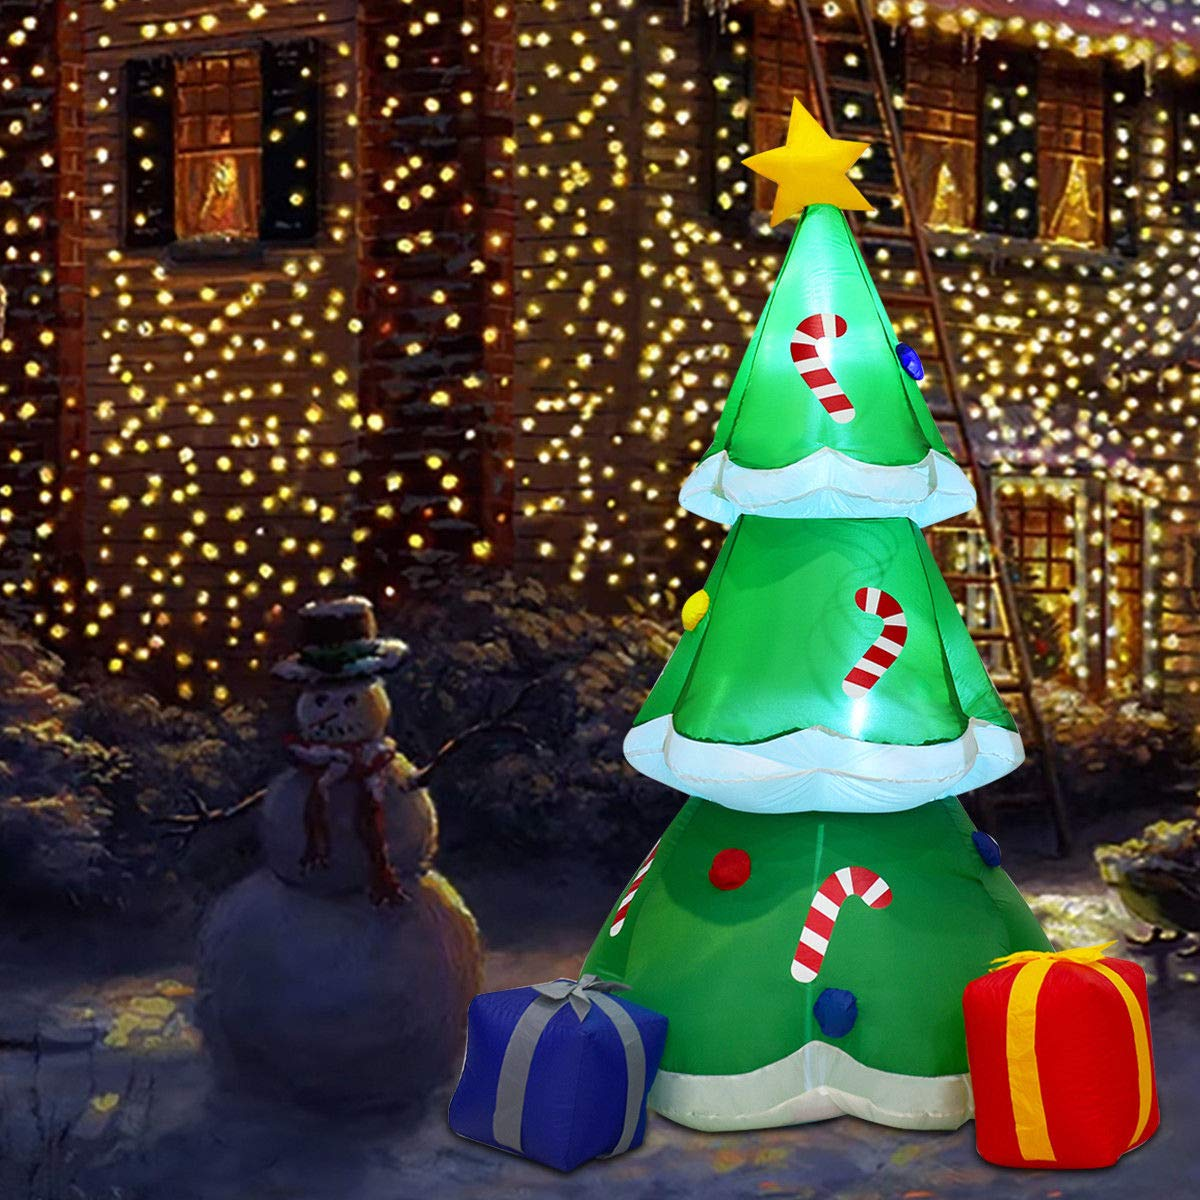 Indoor Outdoor Garden Yard Family Prop Decoration Tangkula 6 FT Inflatable Christmas Tree with Gift Boxes Self Inflating Electric Blow Up Lighted Interior with Fan and Anchor Ropes